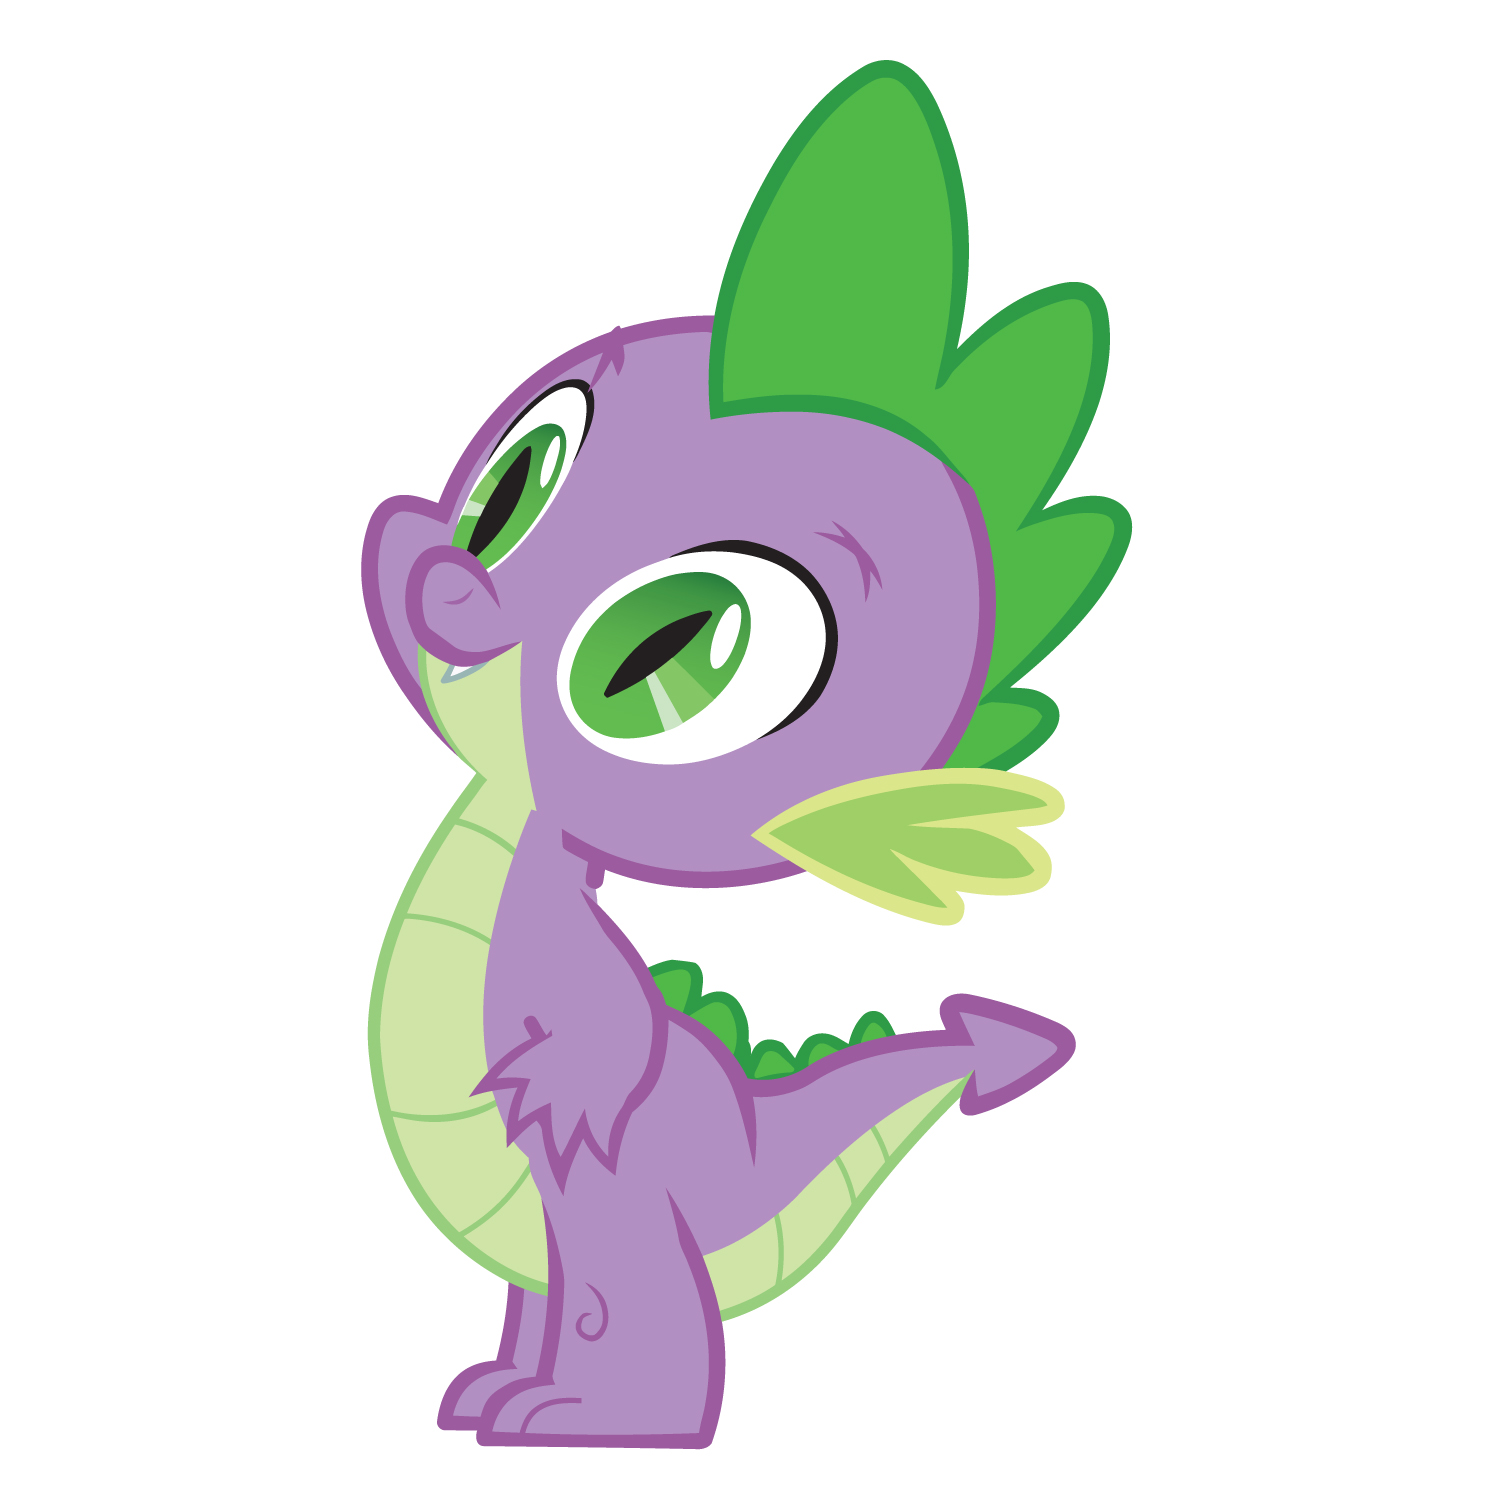 Spike (My Little Pony) - Protagonists Wiki